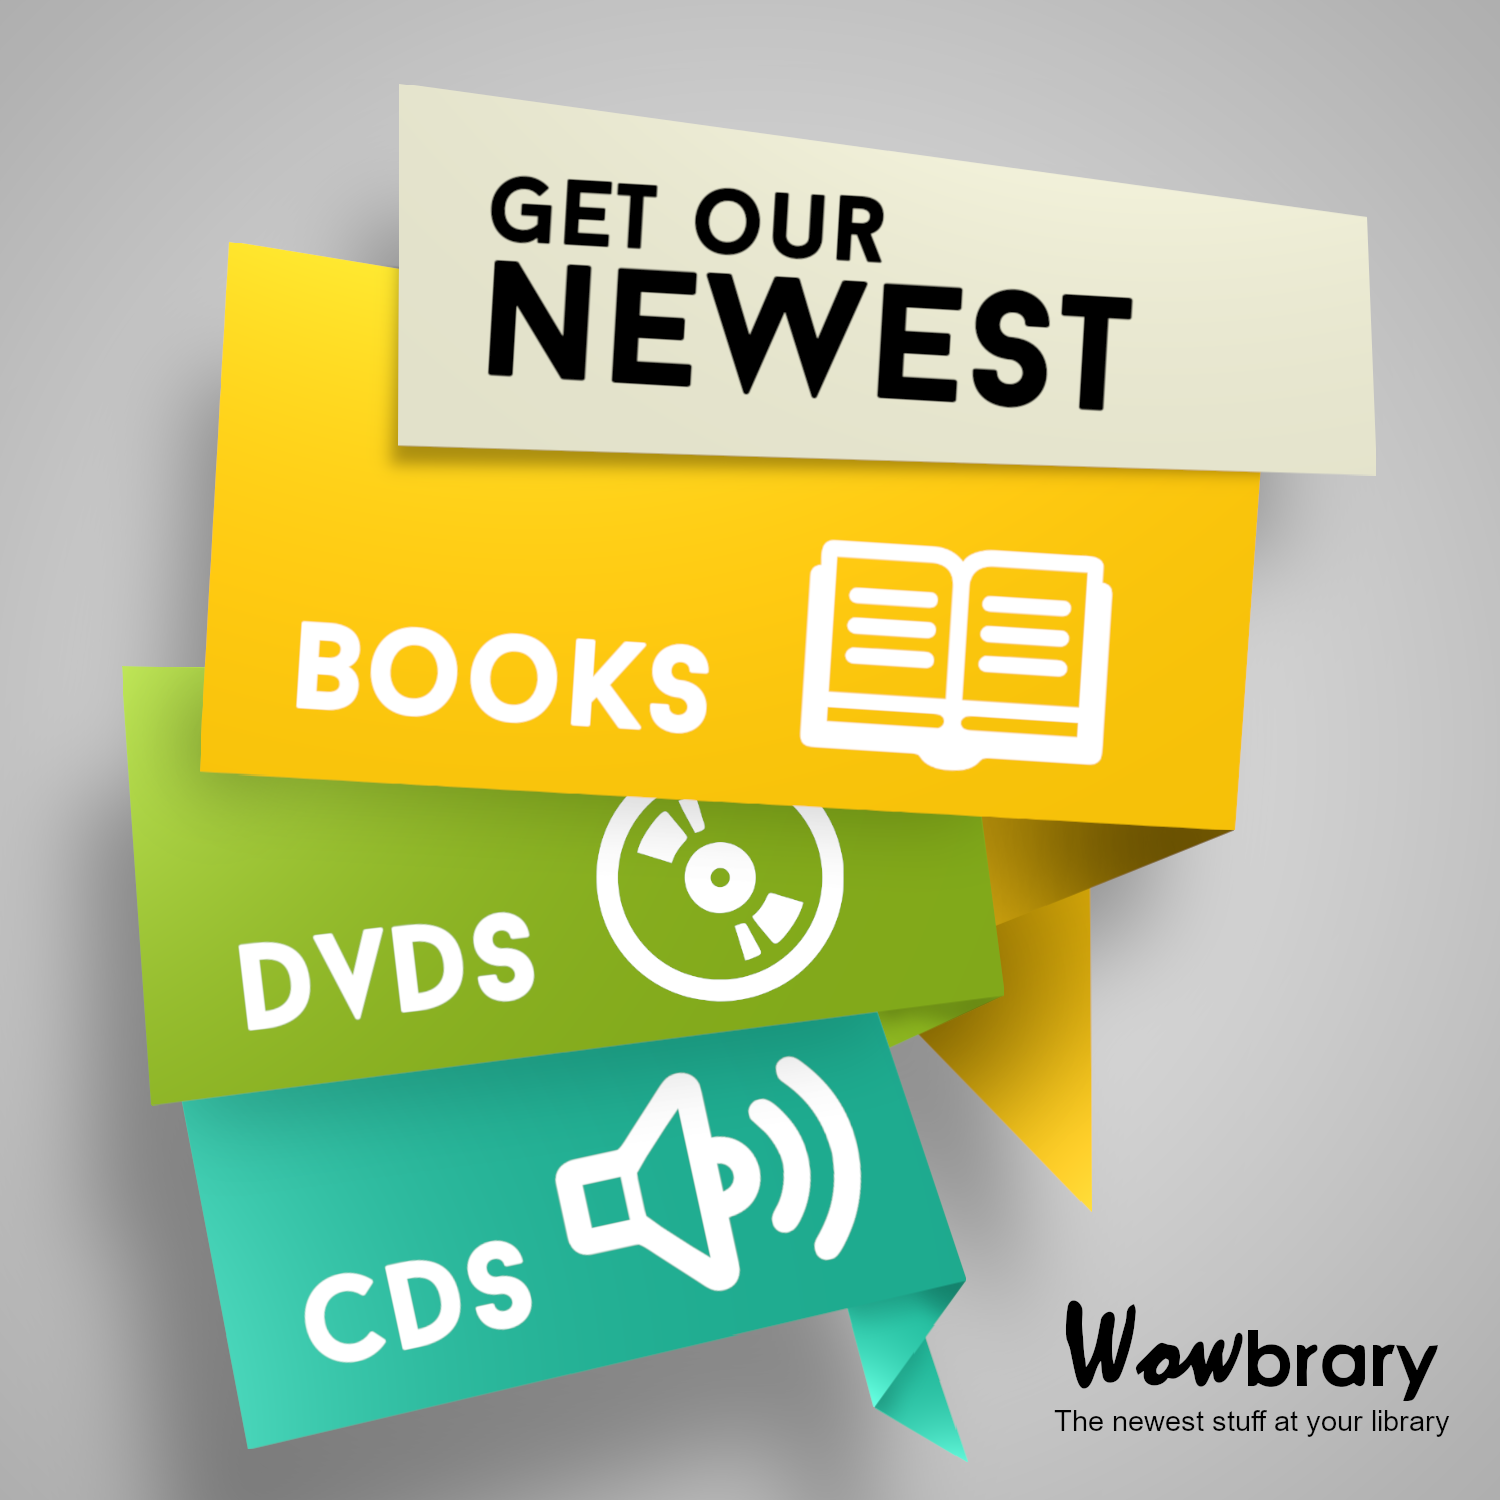 Wowbrary ad